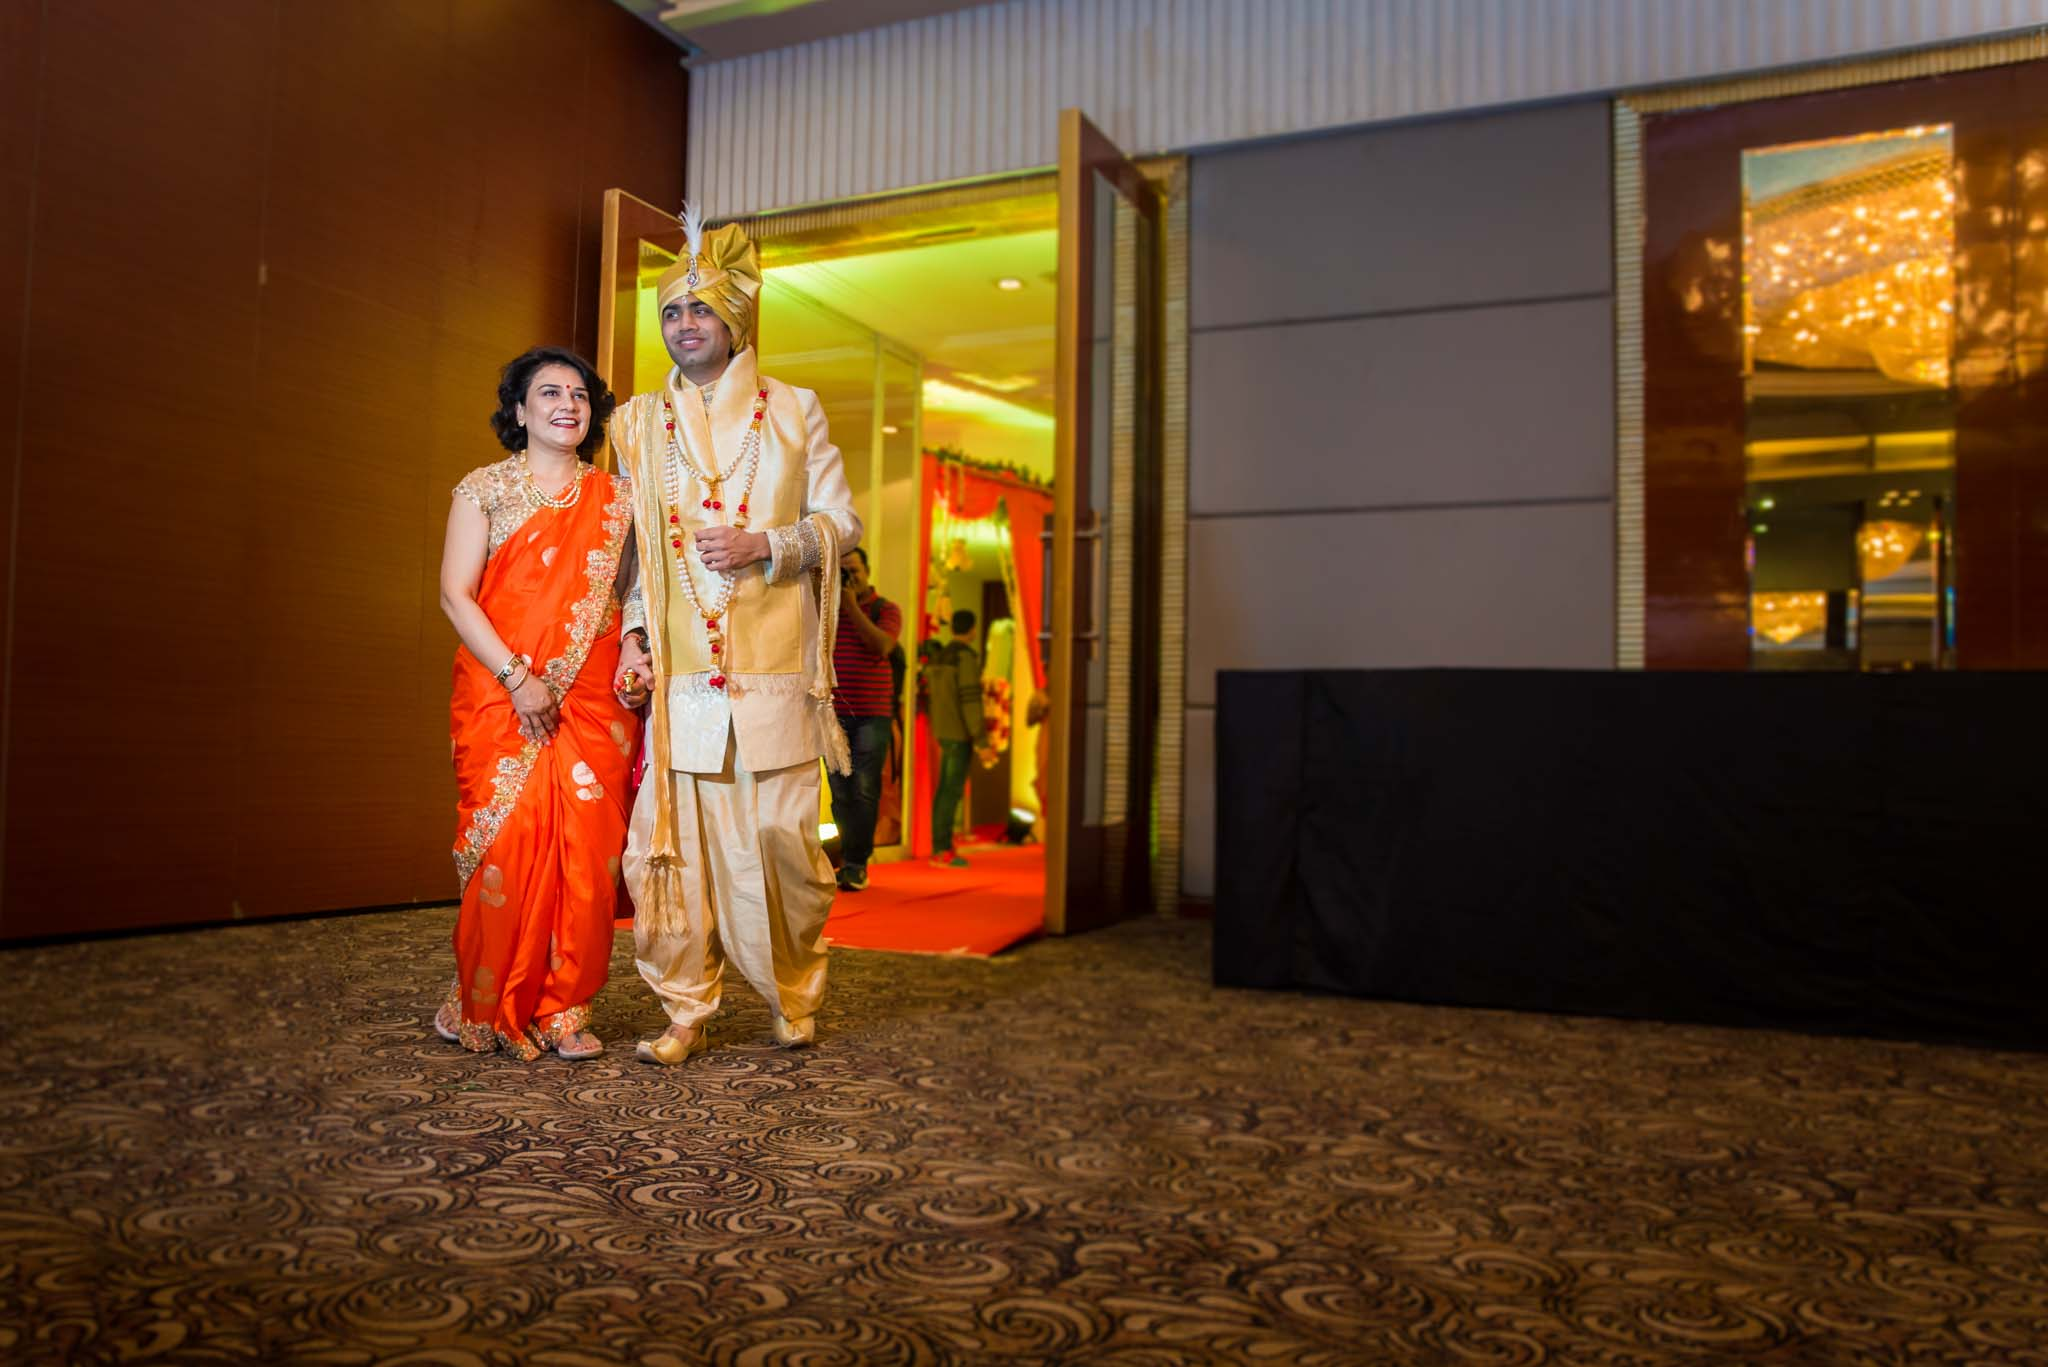 Candid-Wedding-Photography-Nagpur-Destination-61